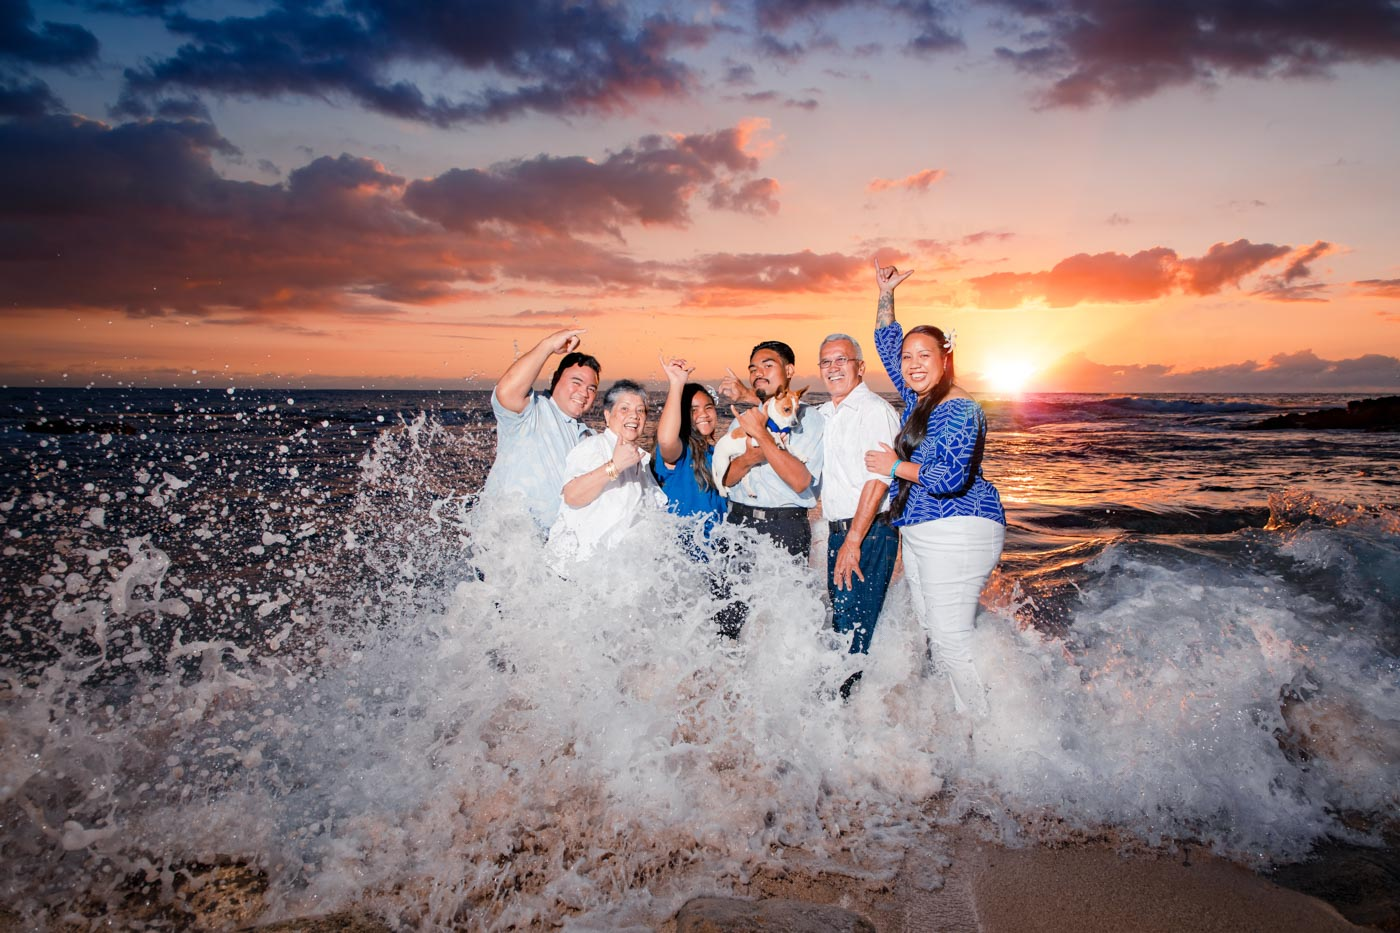 family portrait photographer maui hawaii beach ocean sunset